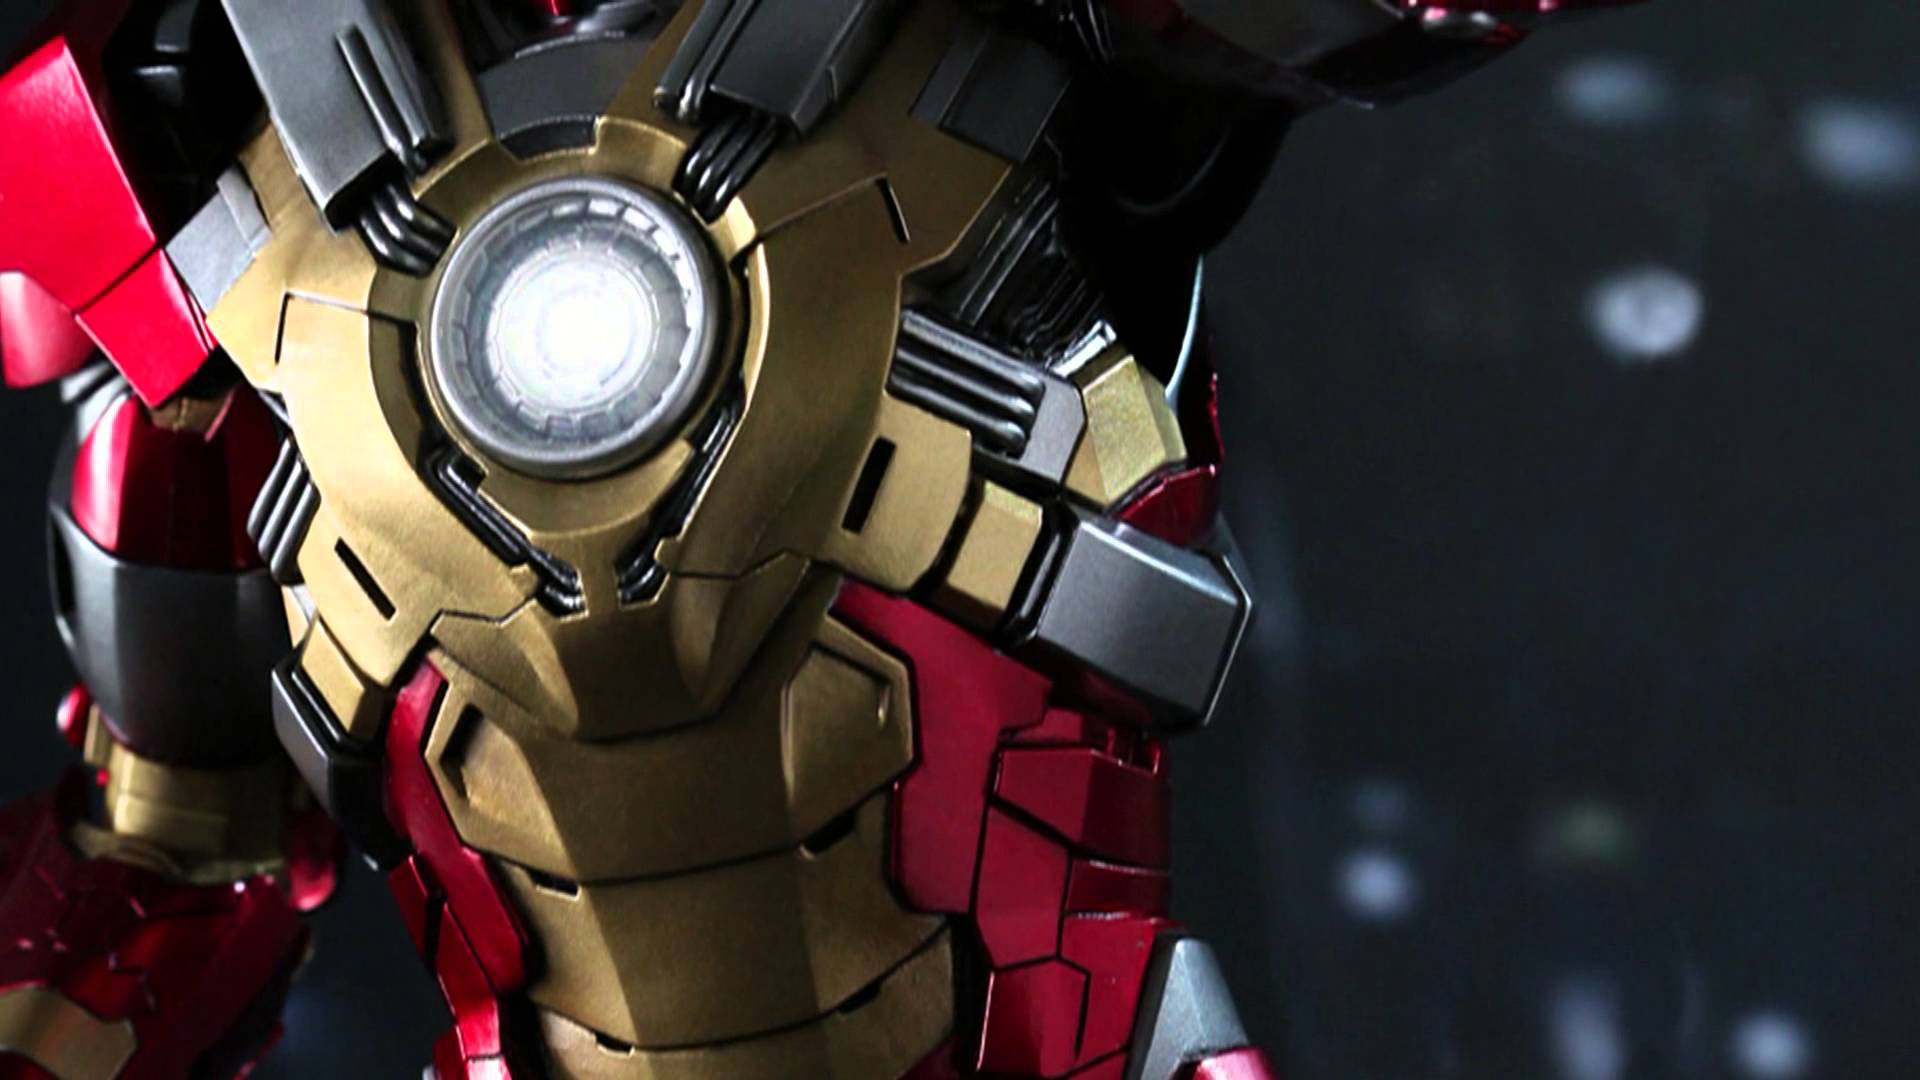 Iron Man Film HD desktop wallpaper : Widescreen : High 1920x1080